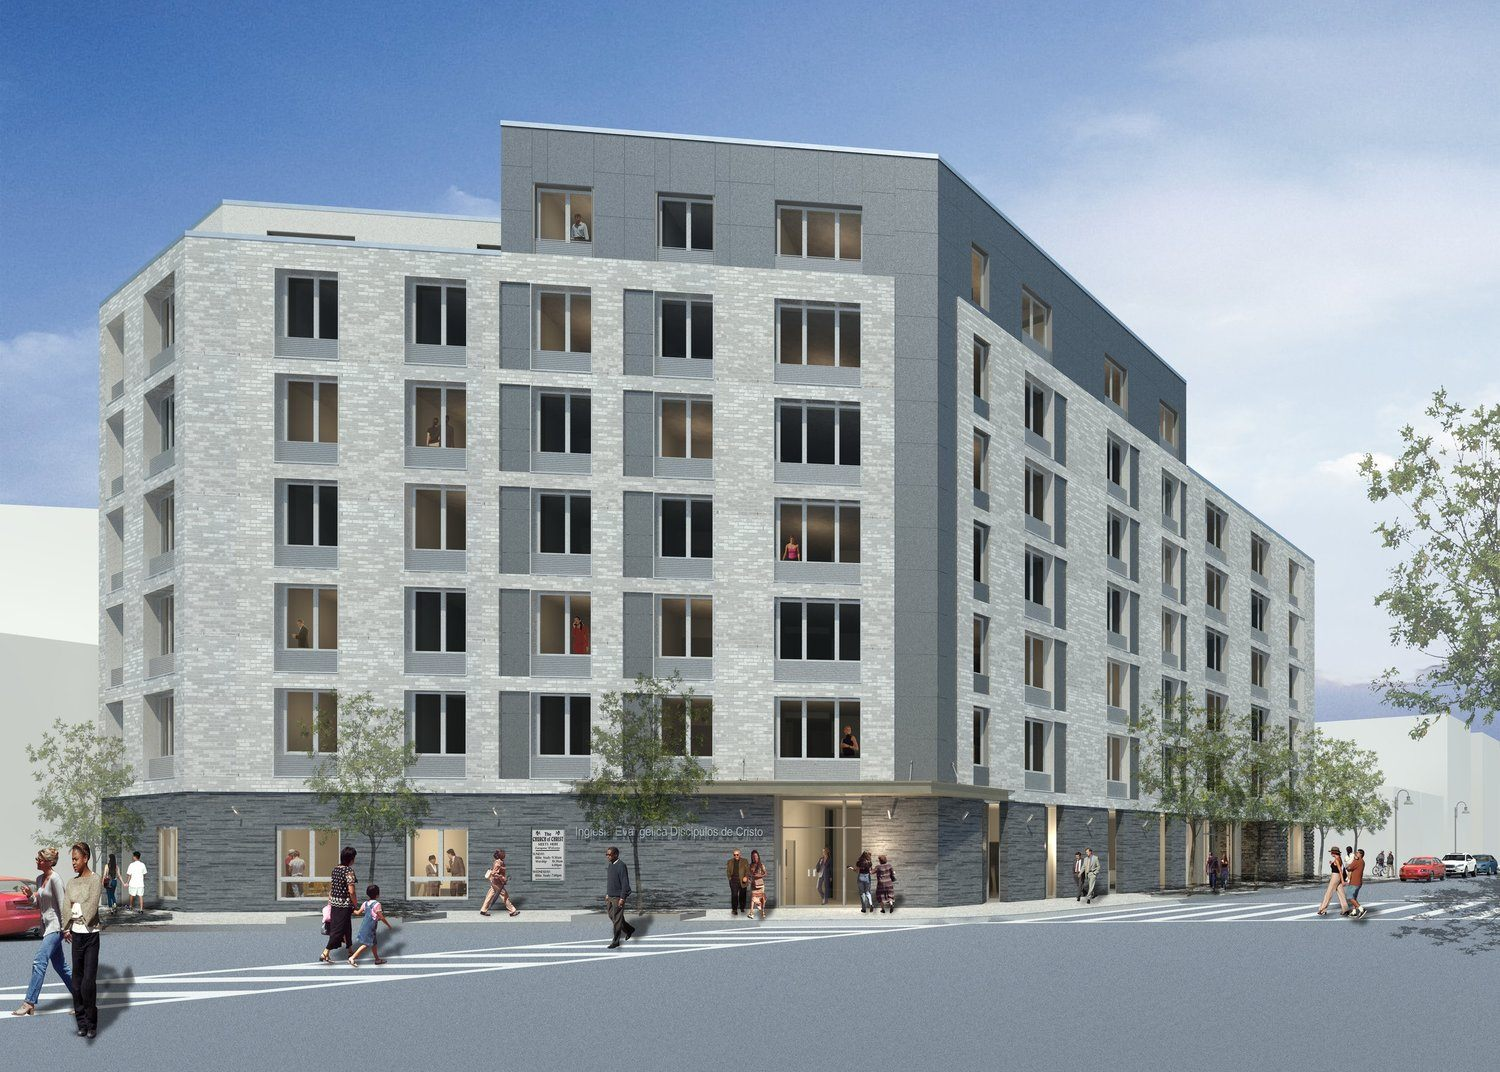 65 chances to live in a new south bronx complex from 860 for Affordable house